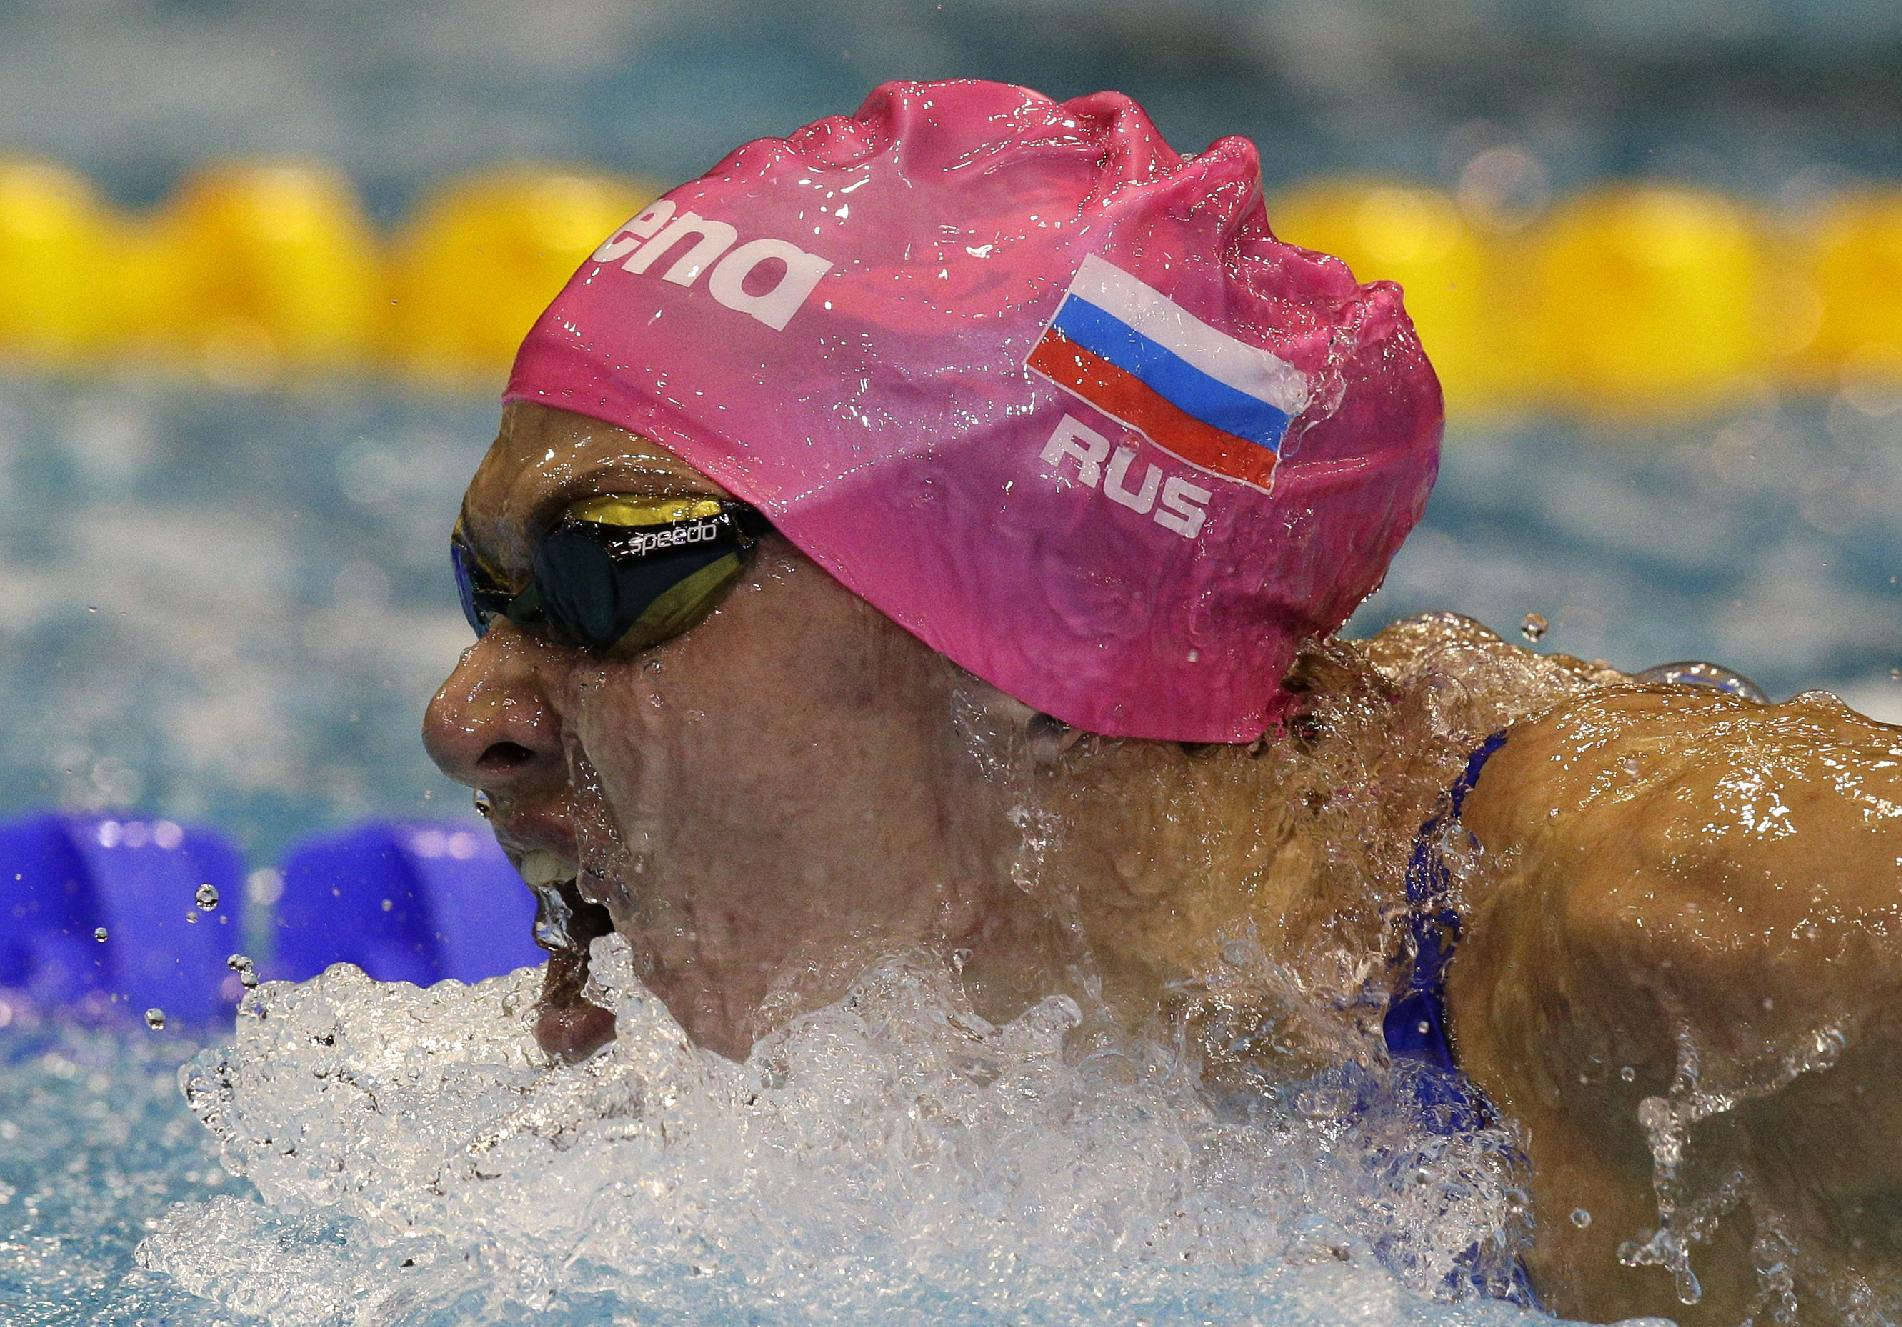 Russia's Yana Martynova competes in a women's 200m butterfly heat at the LEN Swimming European Championships in Berlin, Germany, Saturday, Aug. 23, 2014